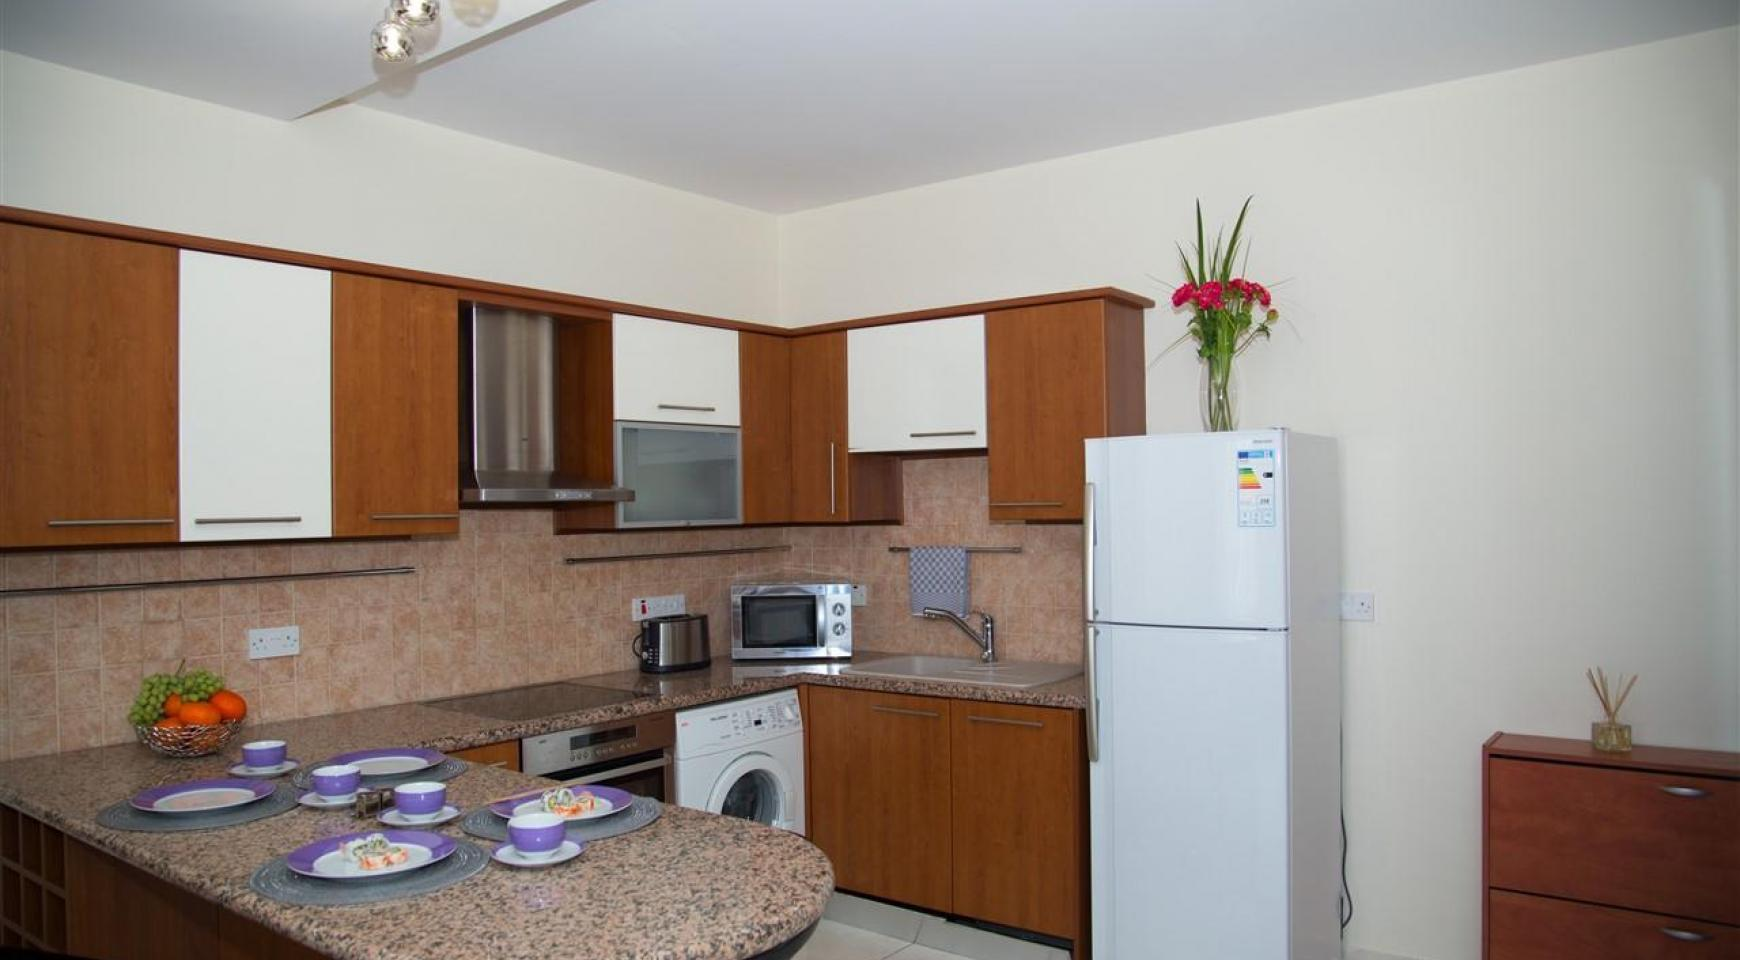 Luxury 2 Bedroom Apartment Mesogios Iris 304 in the Tourist area near the Beach - 10